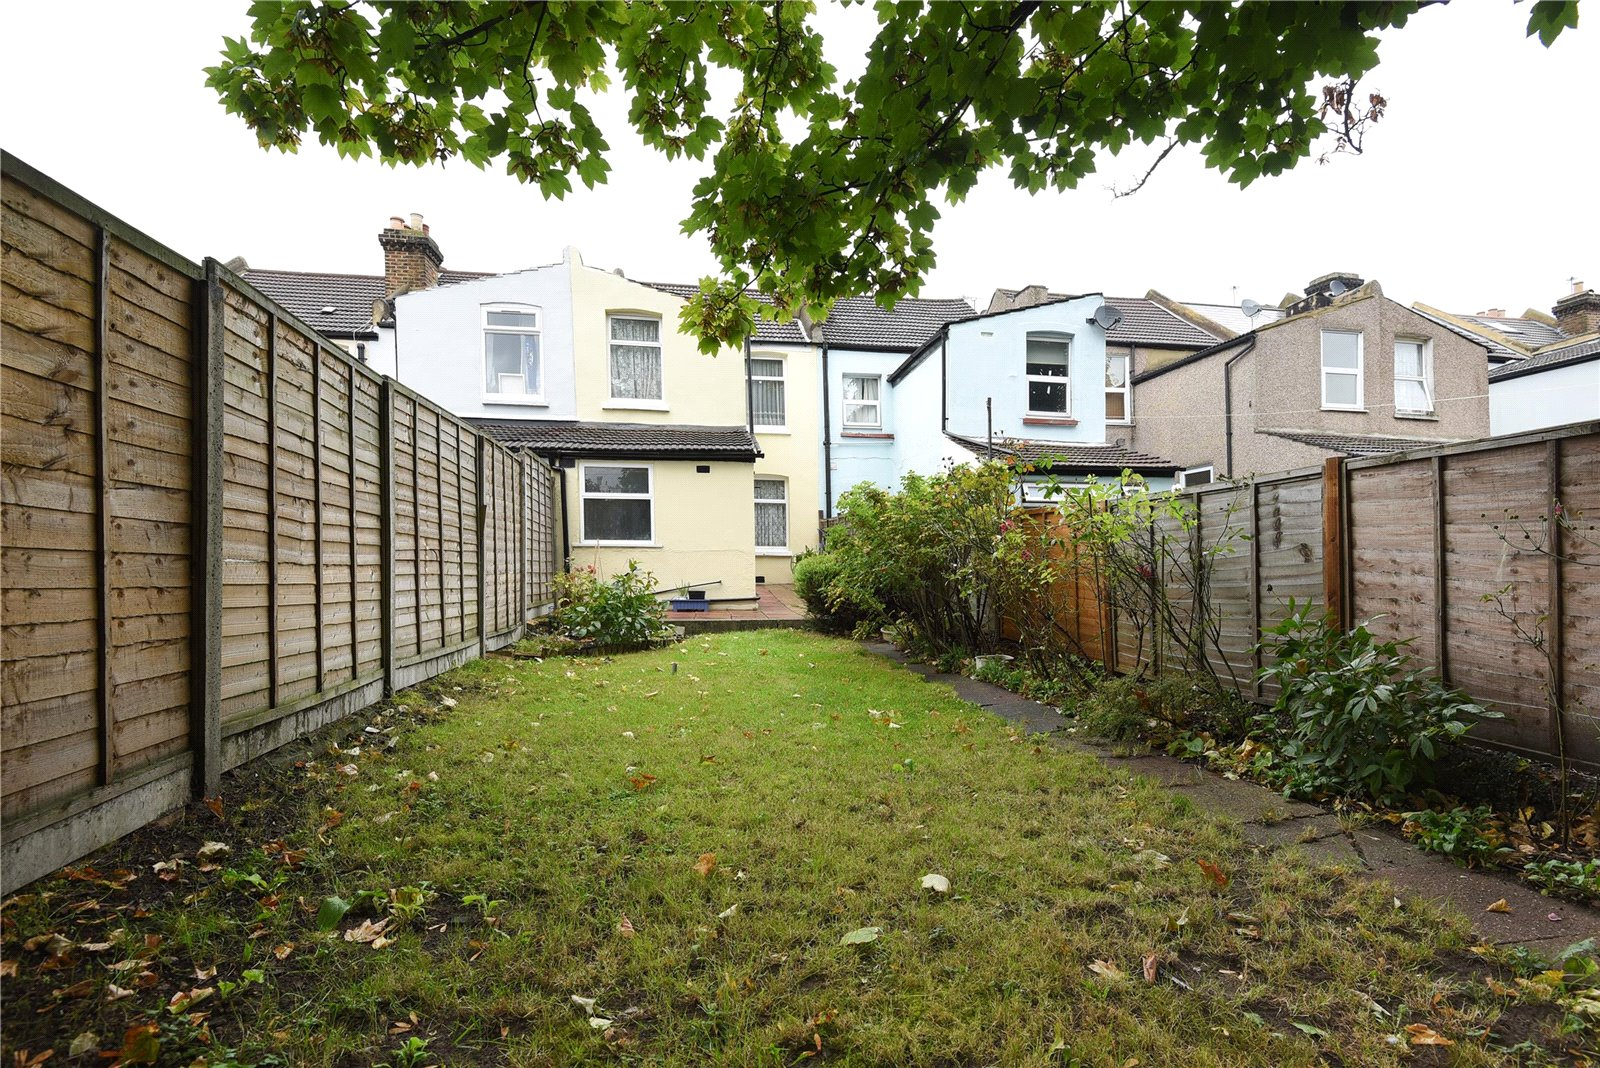 3 bed house for sale in Thornton Heath  - Property Image 4